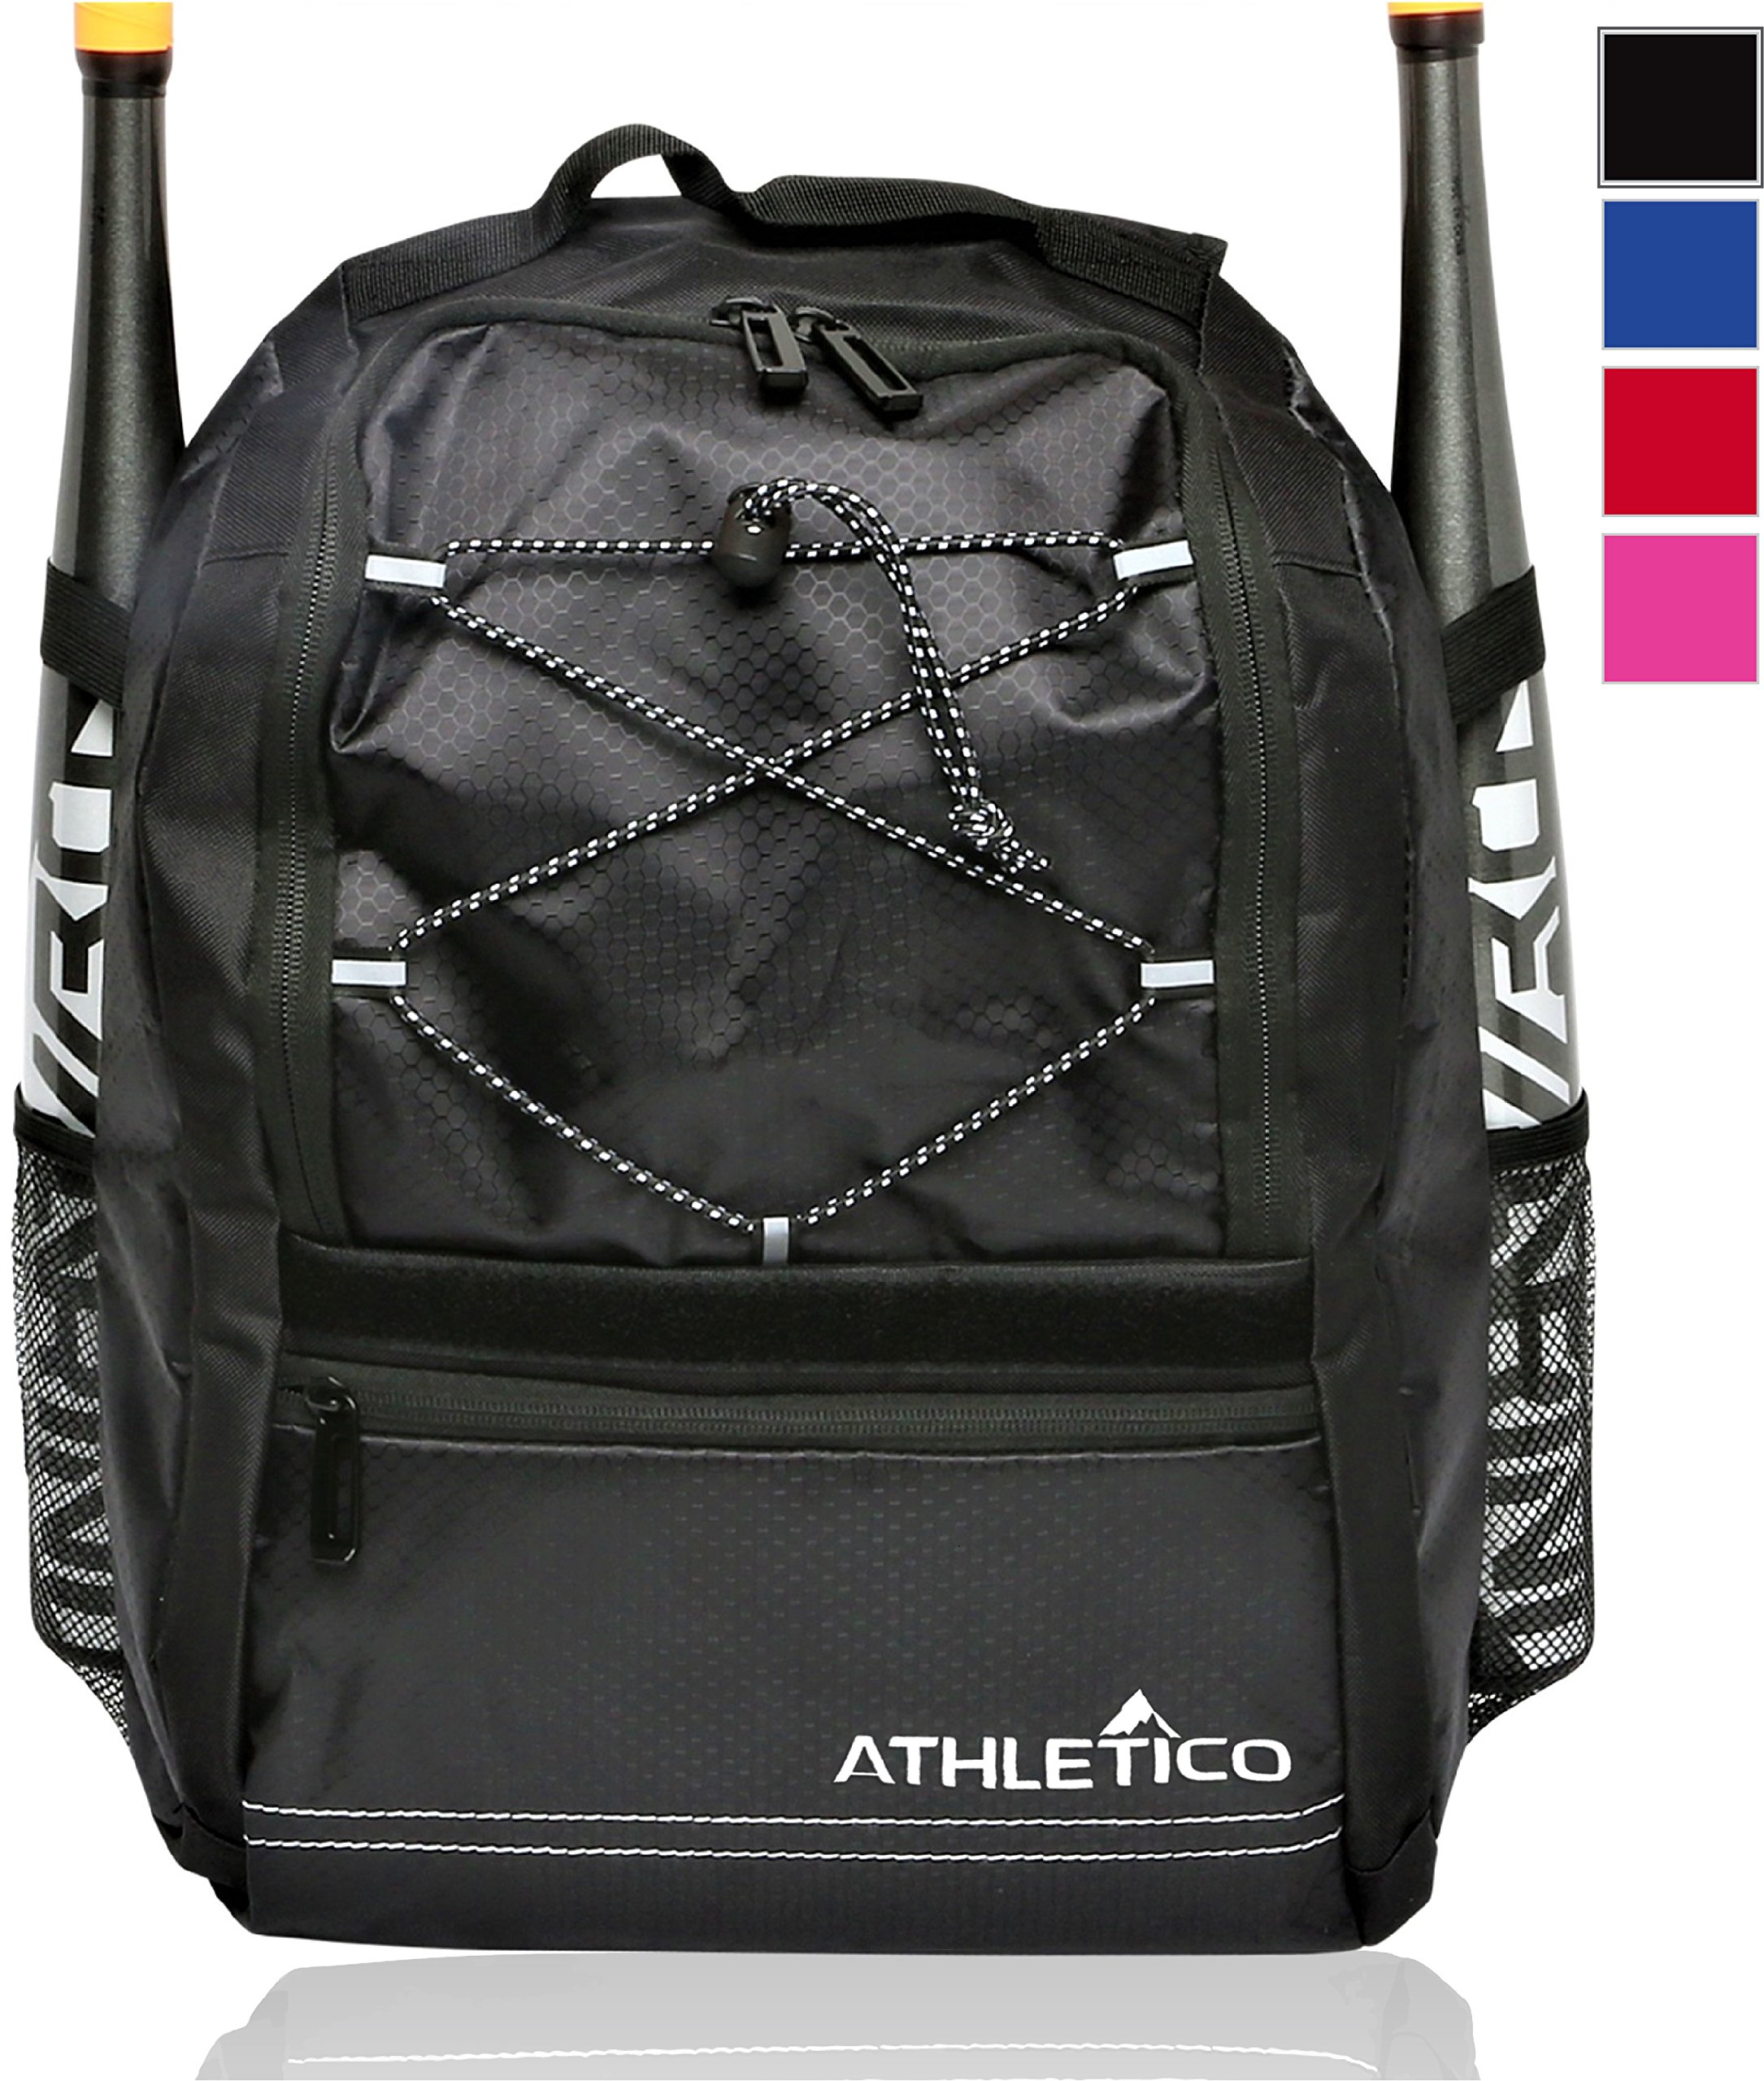 Athletico Youth Baseball Bag - Bat Backpack for Baseball, T-Ball & Softball Equipment & Gear | Holds Bat, Helmet, Glove | Fence Hook (Black) by Athletico